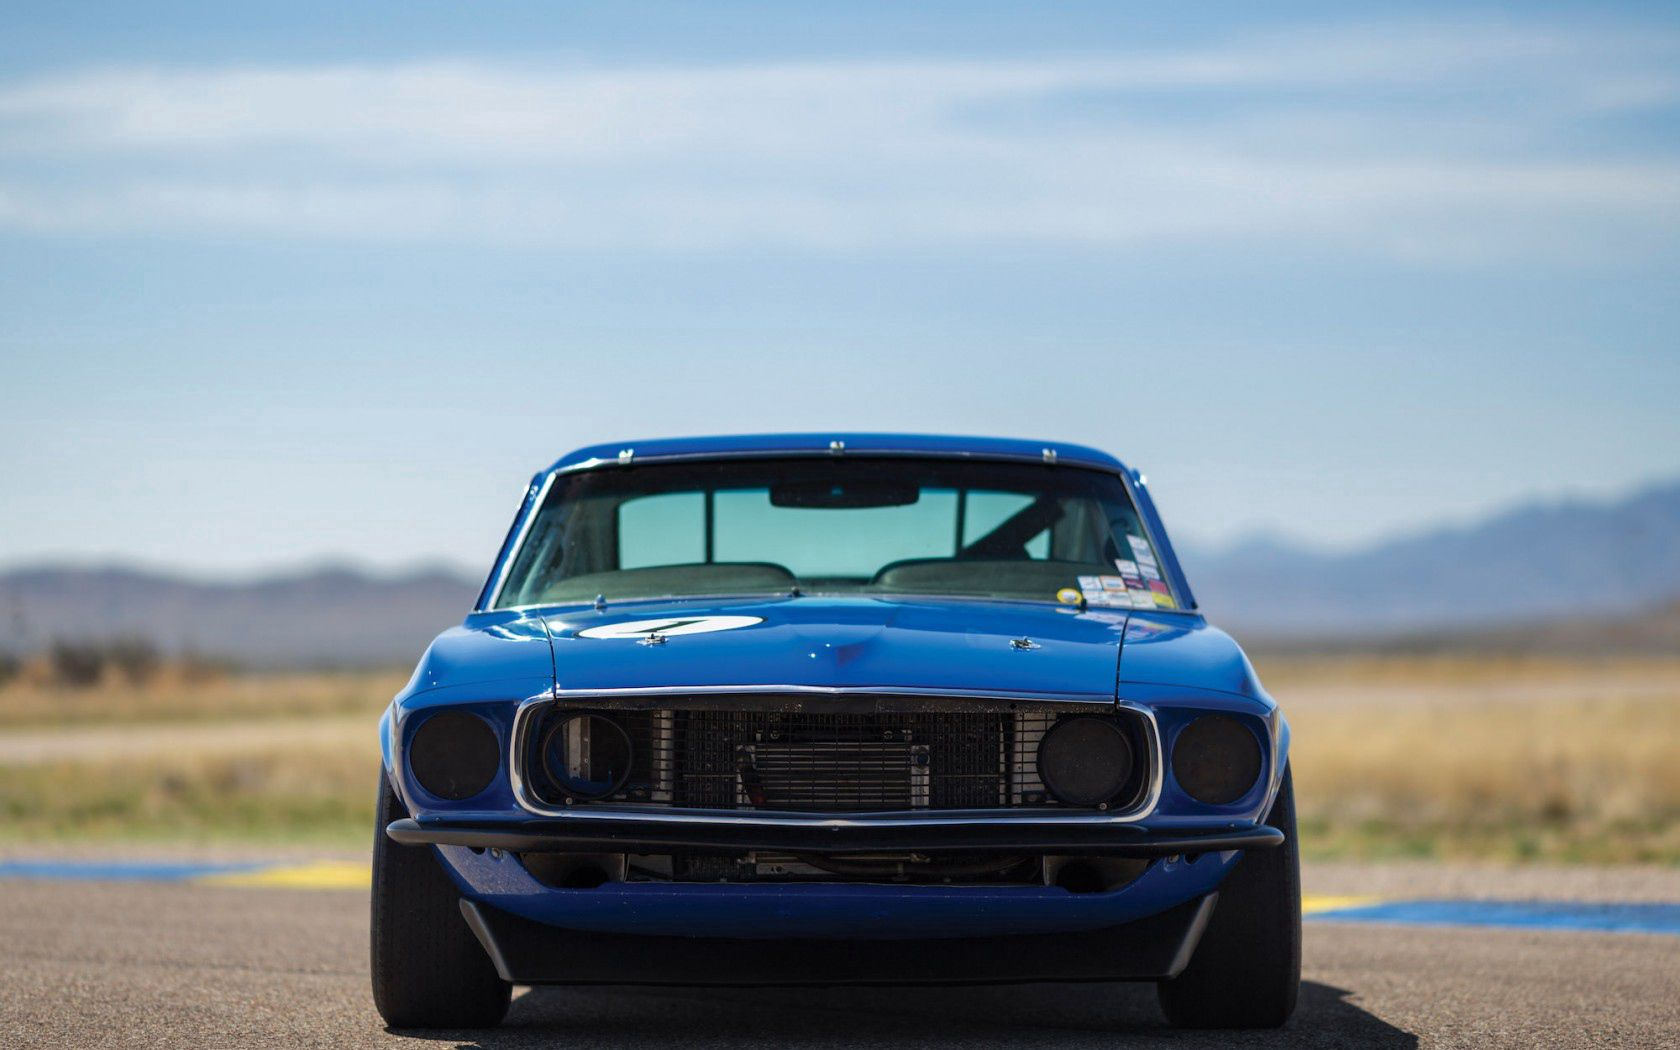 63319 free wallpaper 1125x2436 for phone, download images Auto, Cars, Front View, Ford Mustang, 1969 1125x2436 for mobile